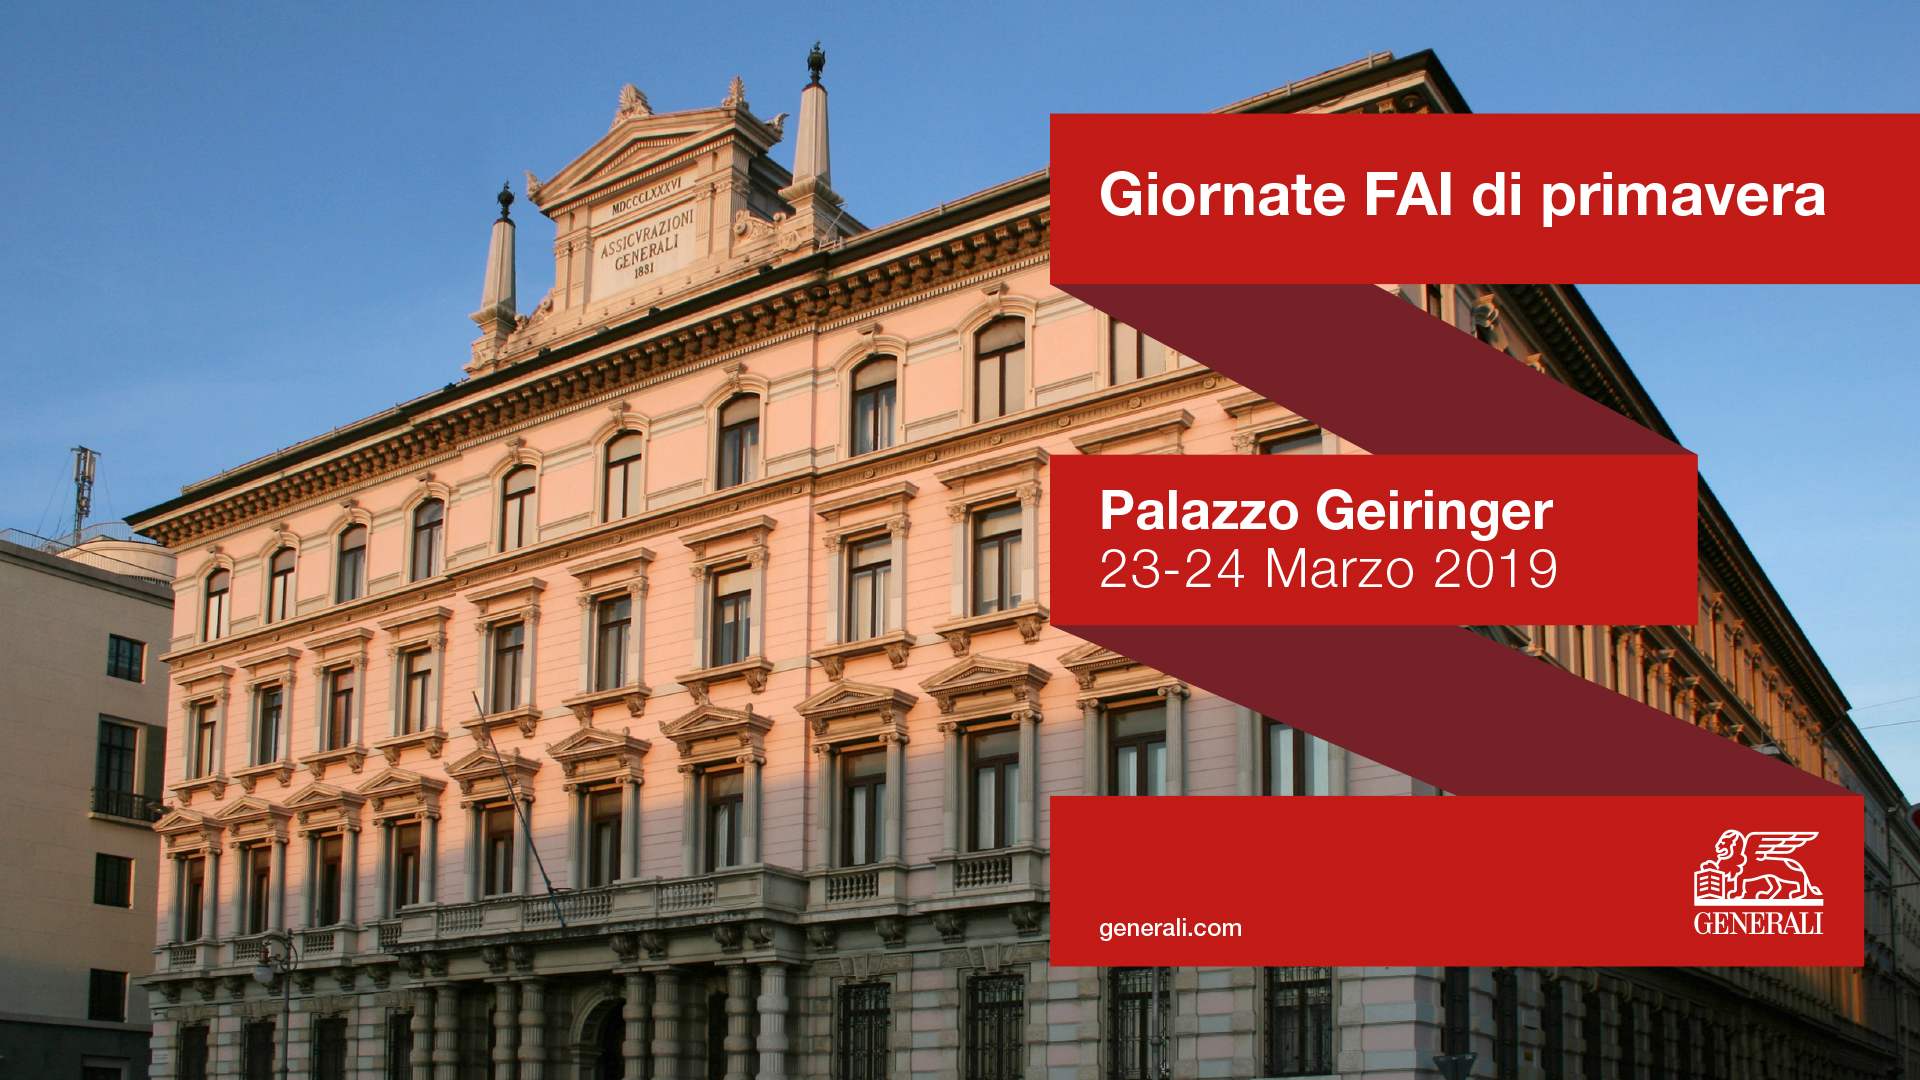 Palazzo Geiringer, historical headquarters of the Central Head Office of Assicurazioni Generali (1886)